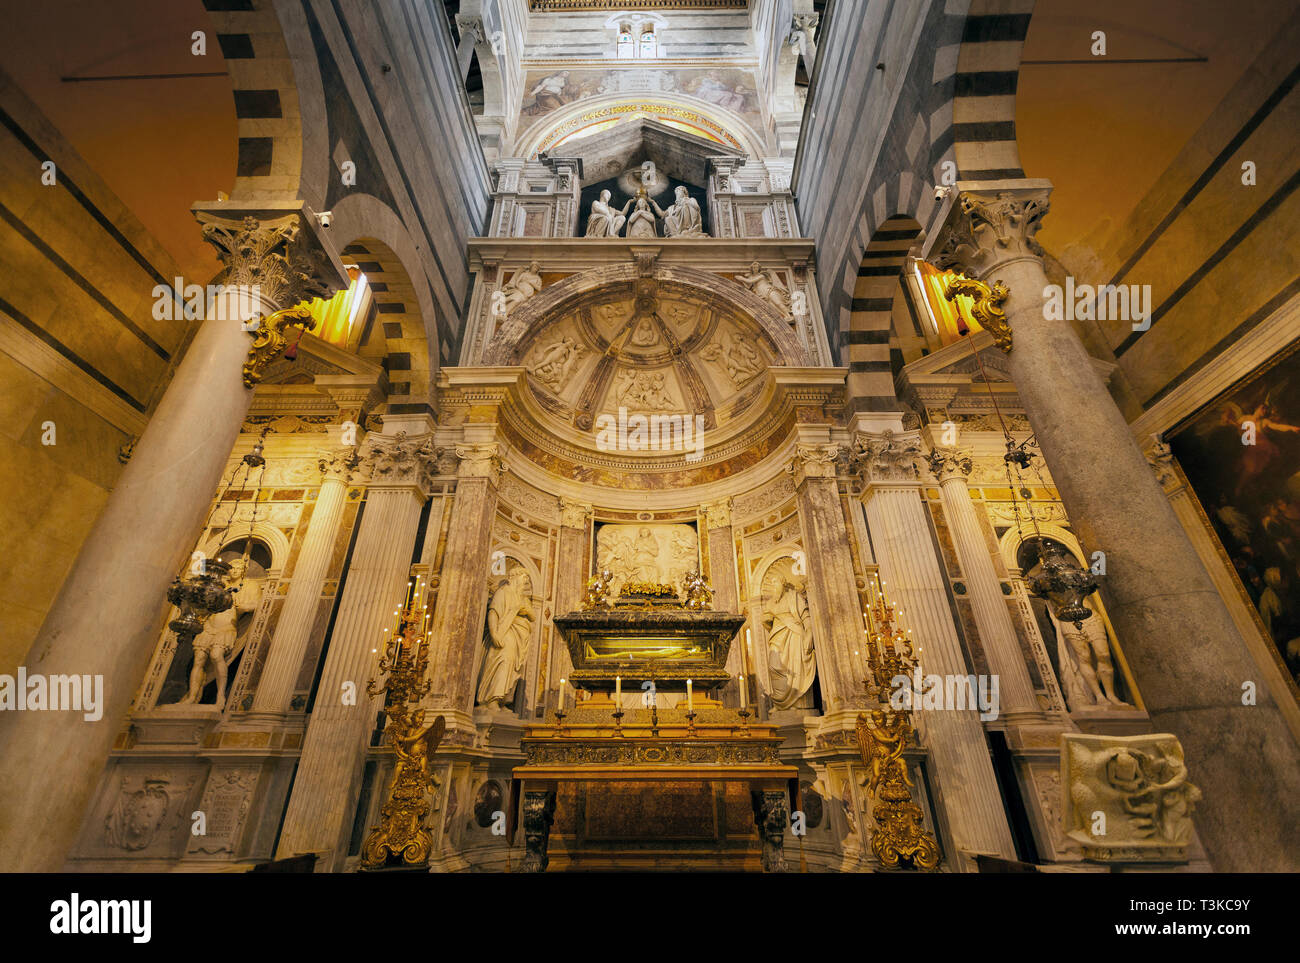 Altar of St. Rainerius, Pisa Cathedral Stock Photo